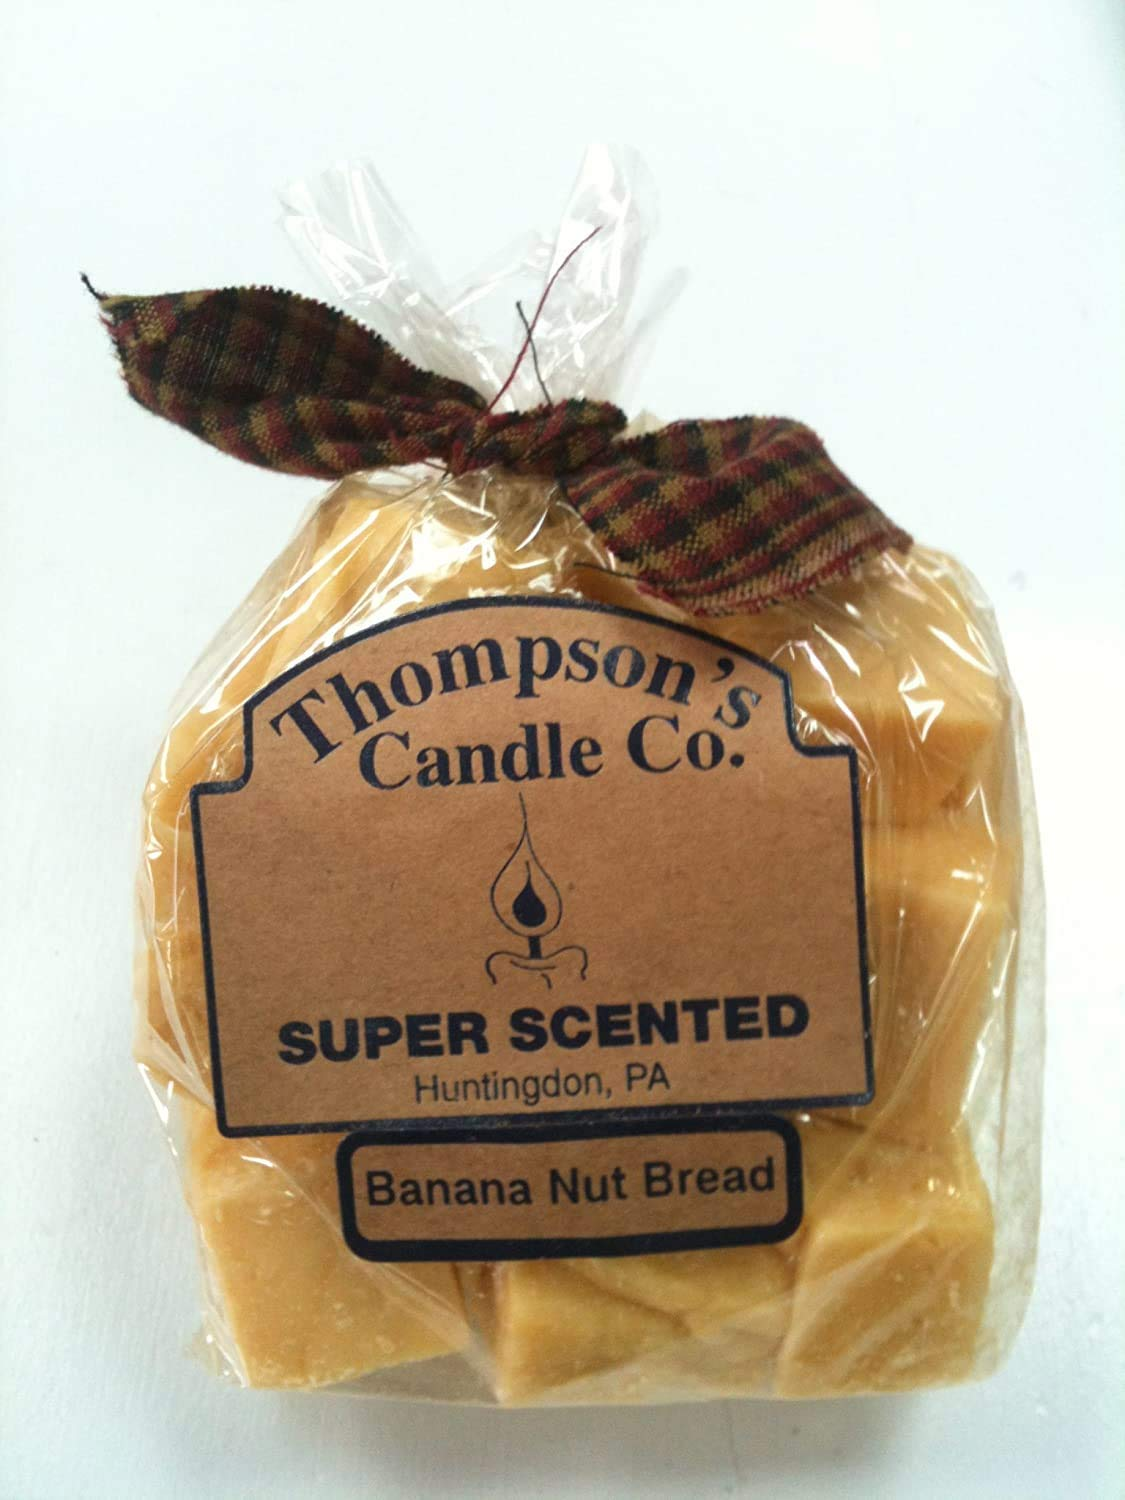 Thompson's Candle bncr Super Scented Banana Nut Bread Crumbles, 6 Ounce